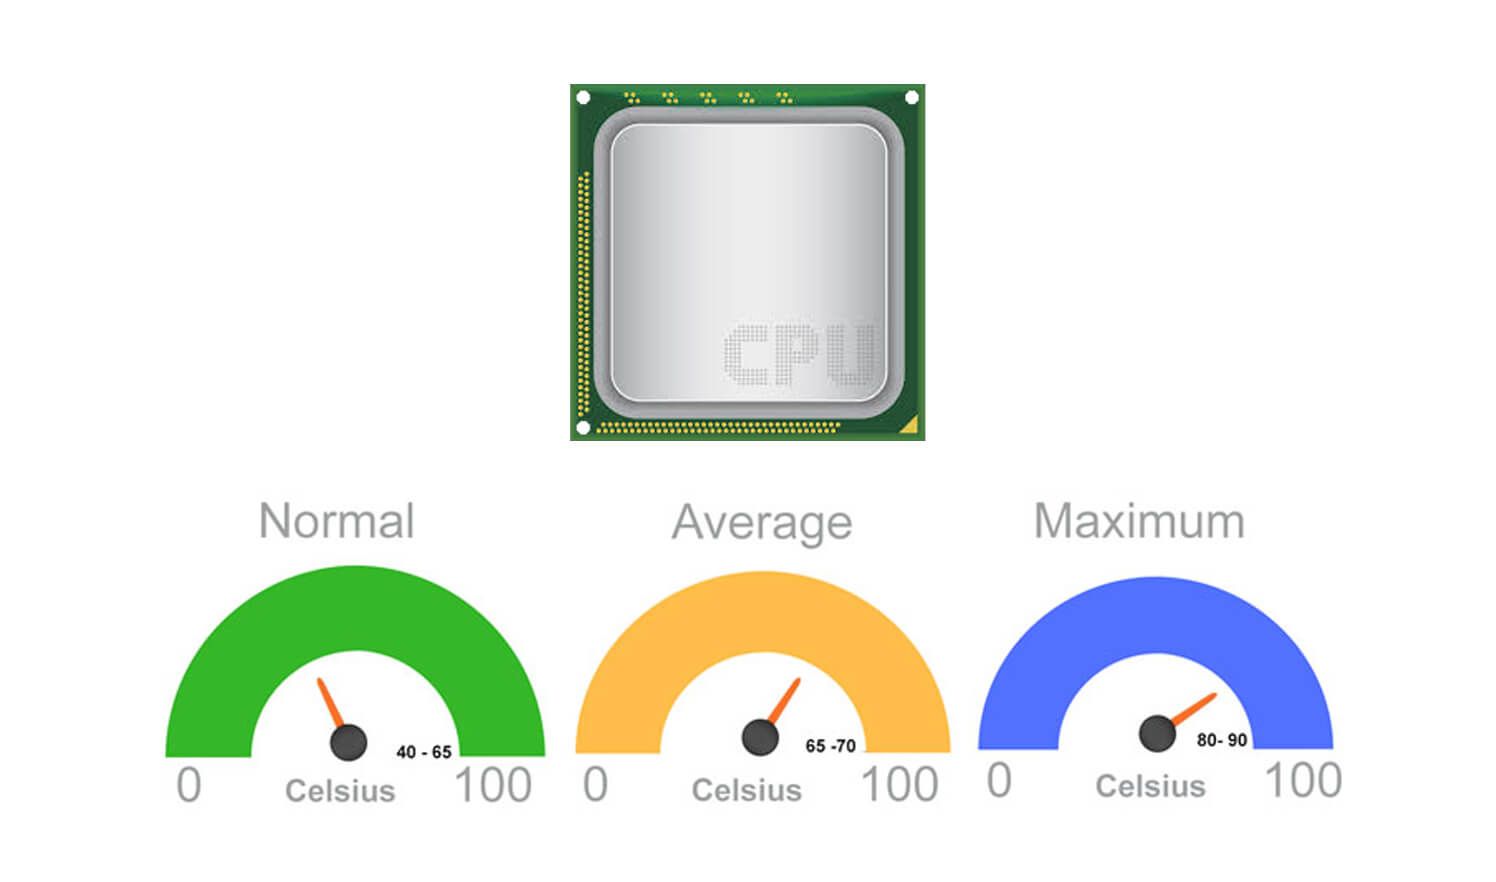 What is a good CPU temperature?